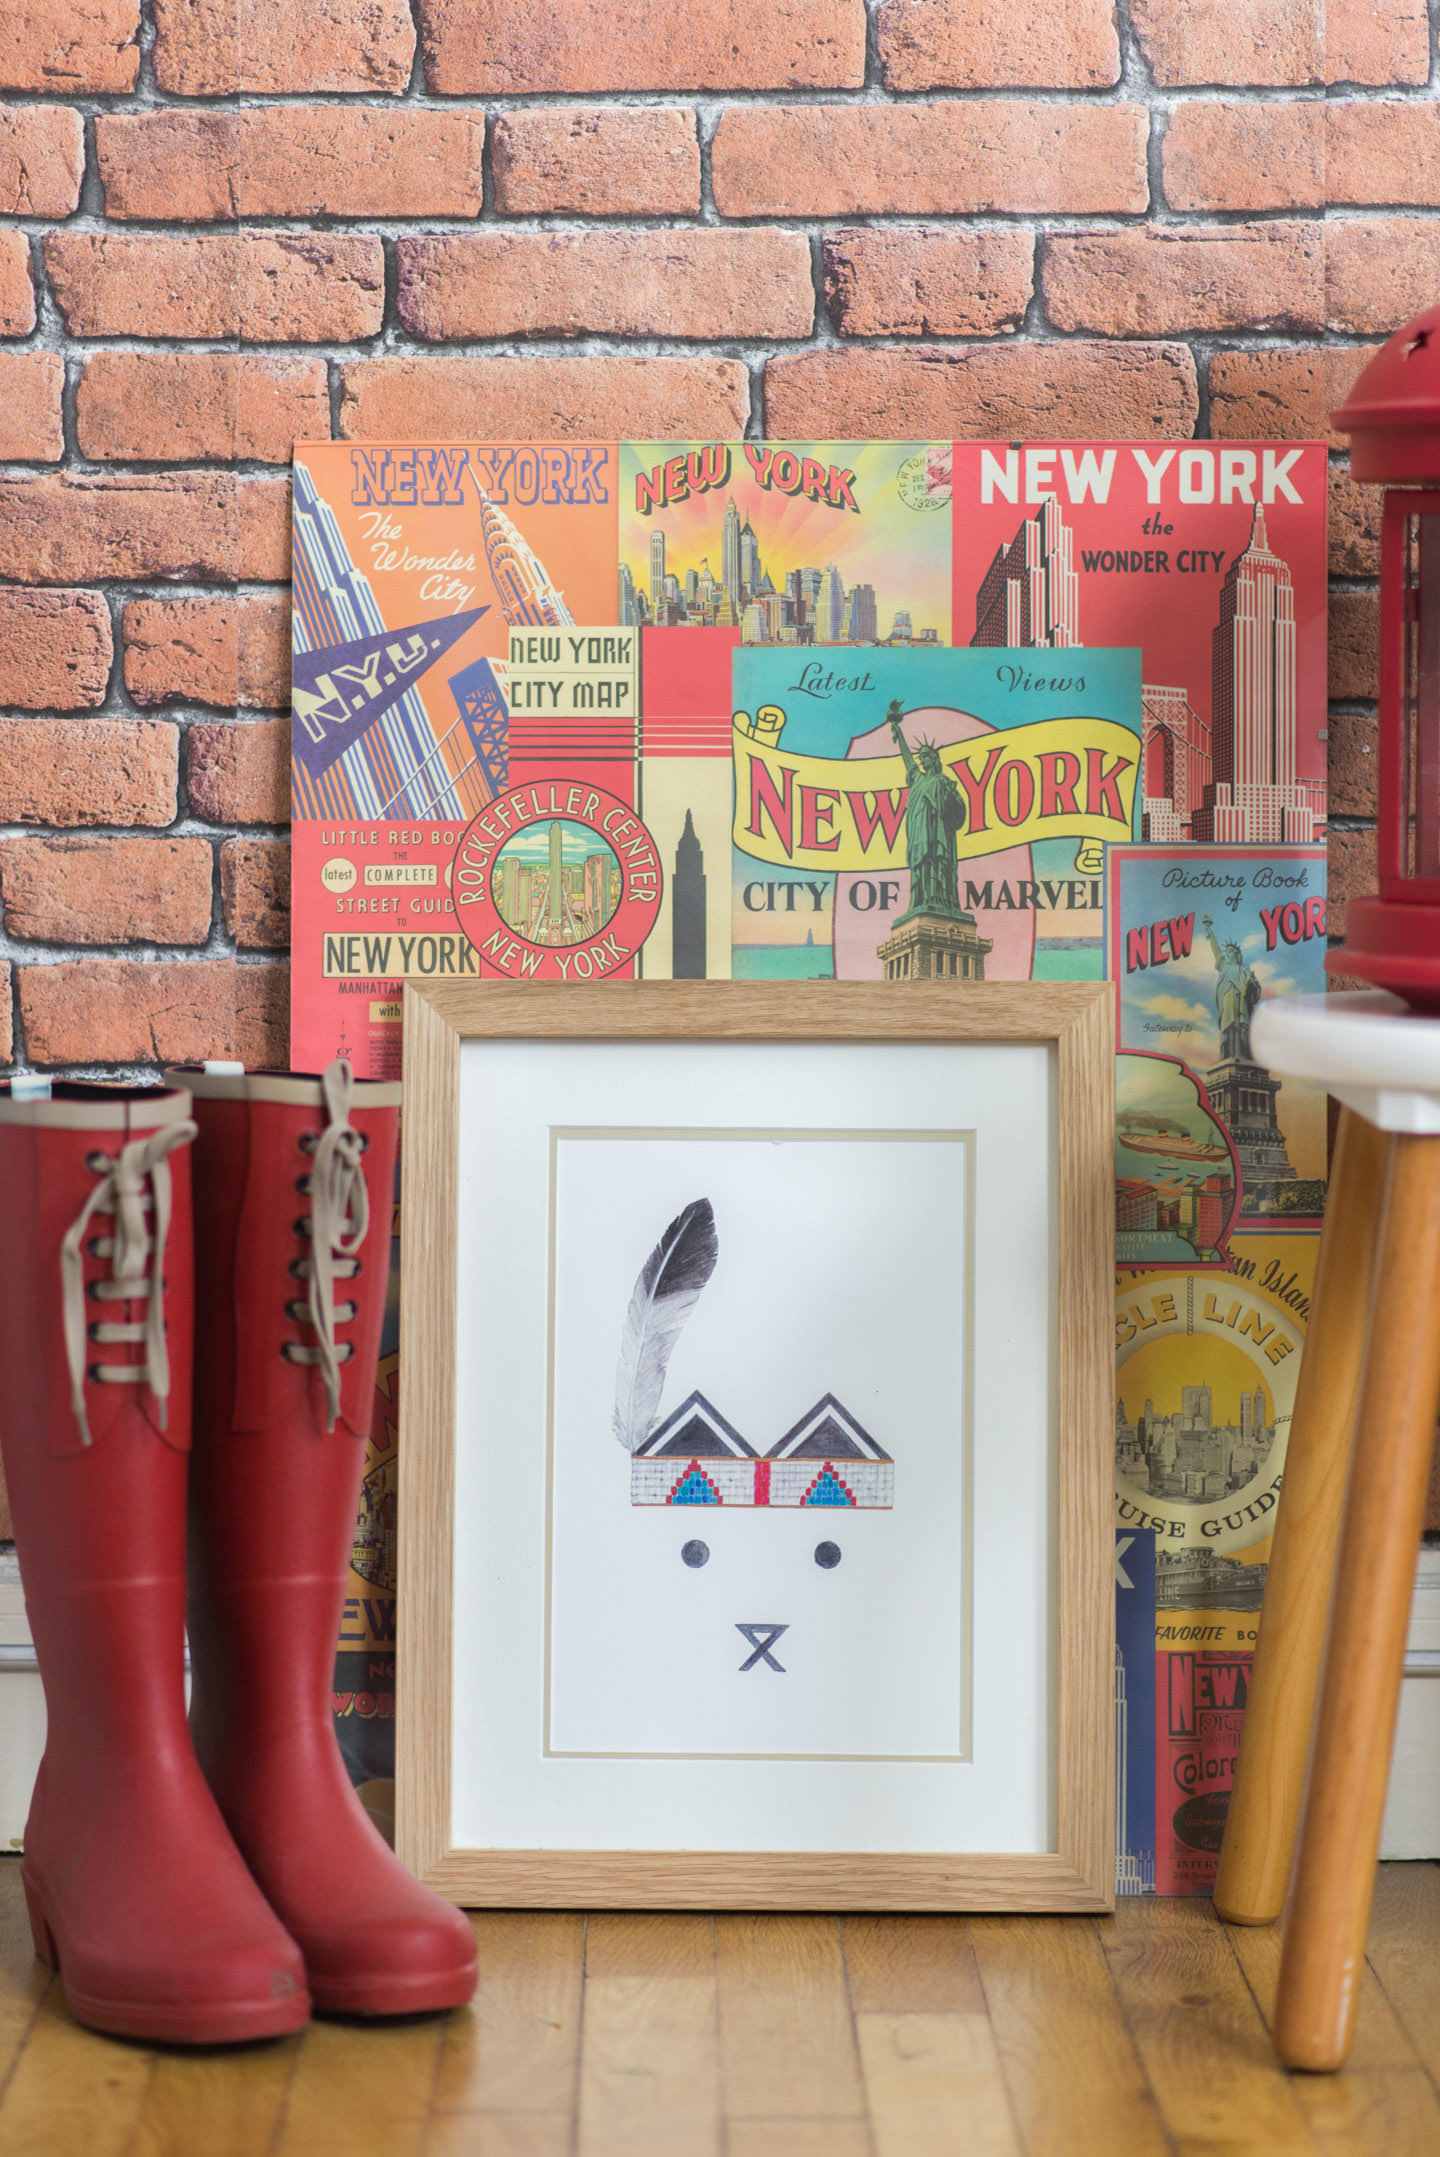 Blog-Mode-And-The-City-Lifestyle-Cinq-Petites-Choses-162-Tiny-Indian-Tiny-Paw